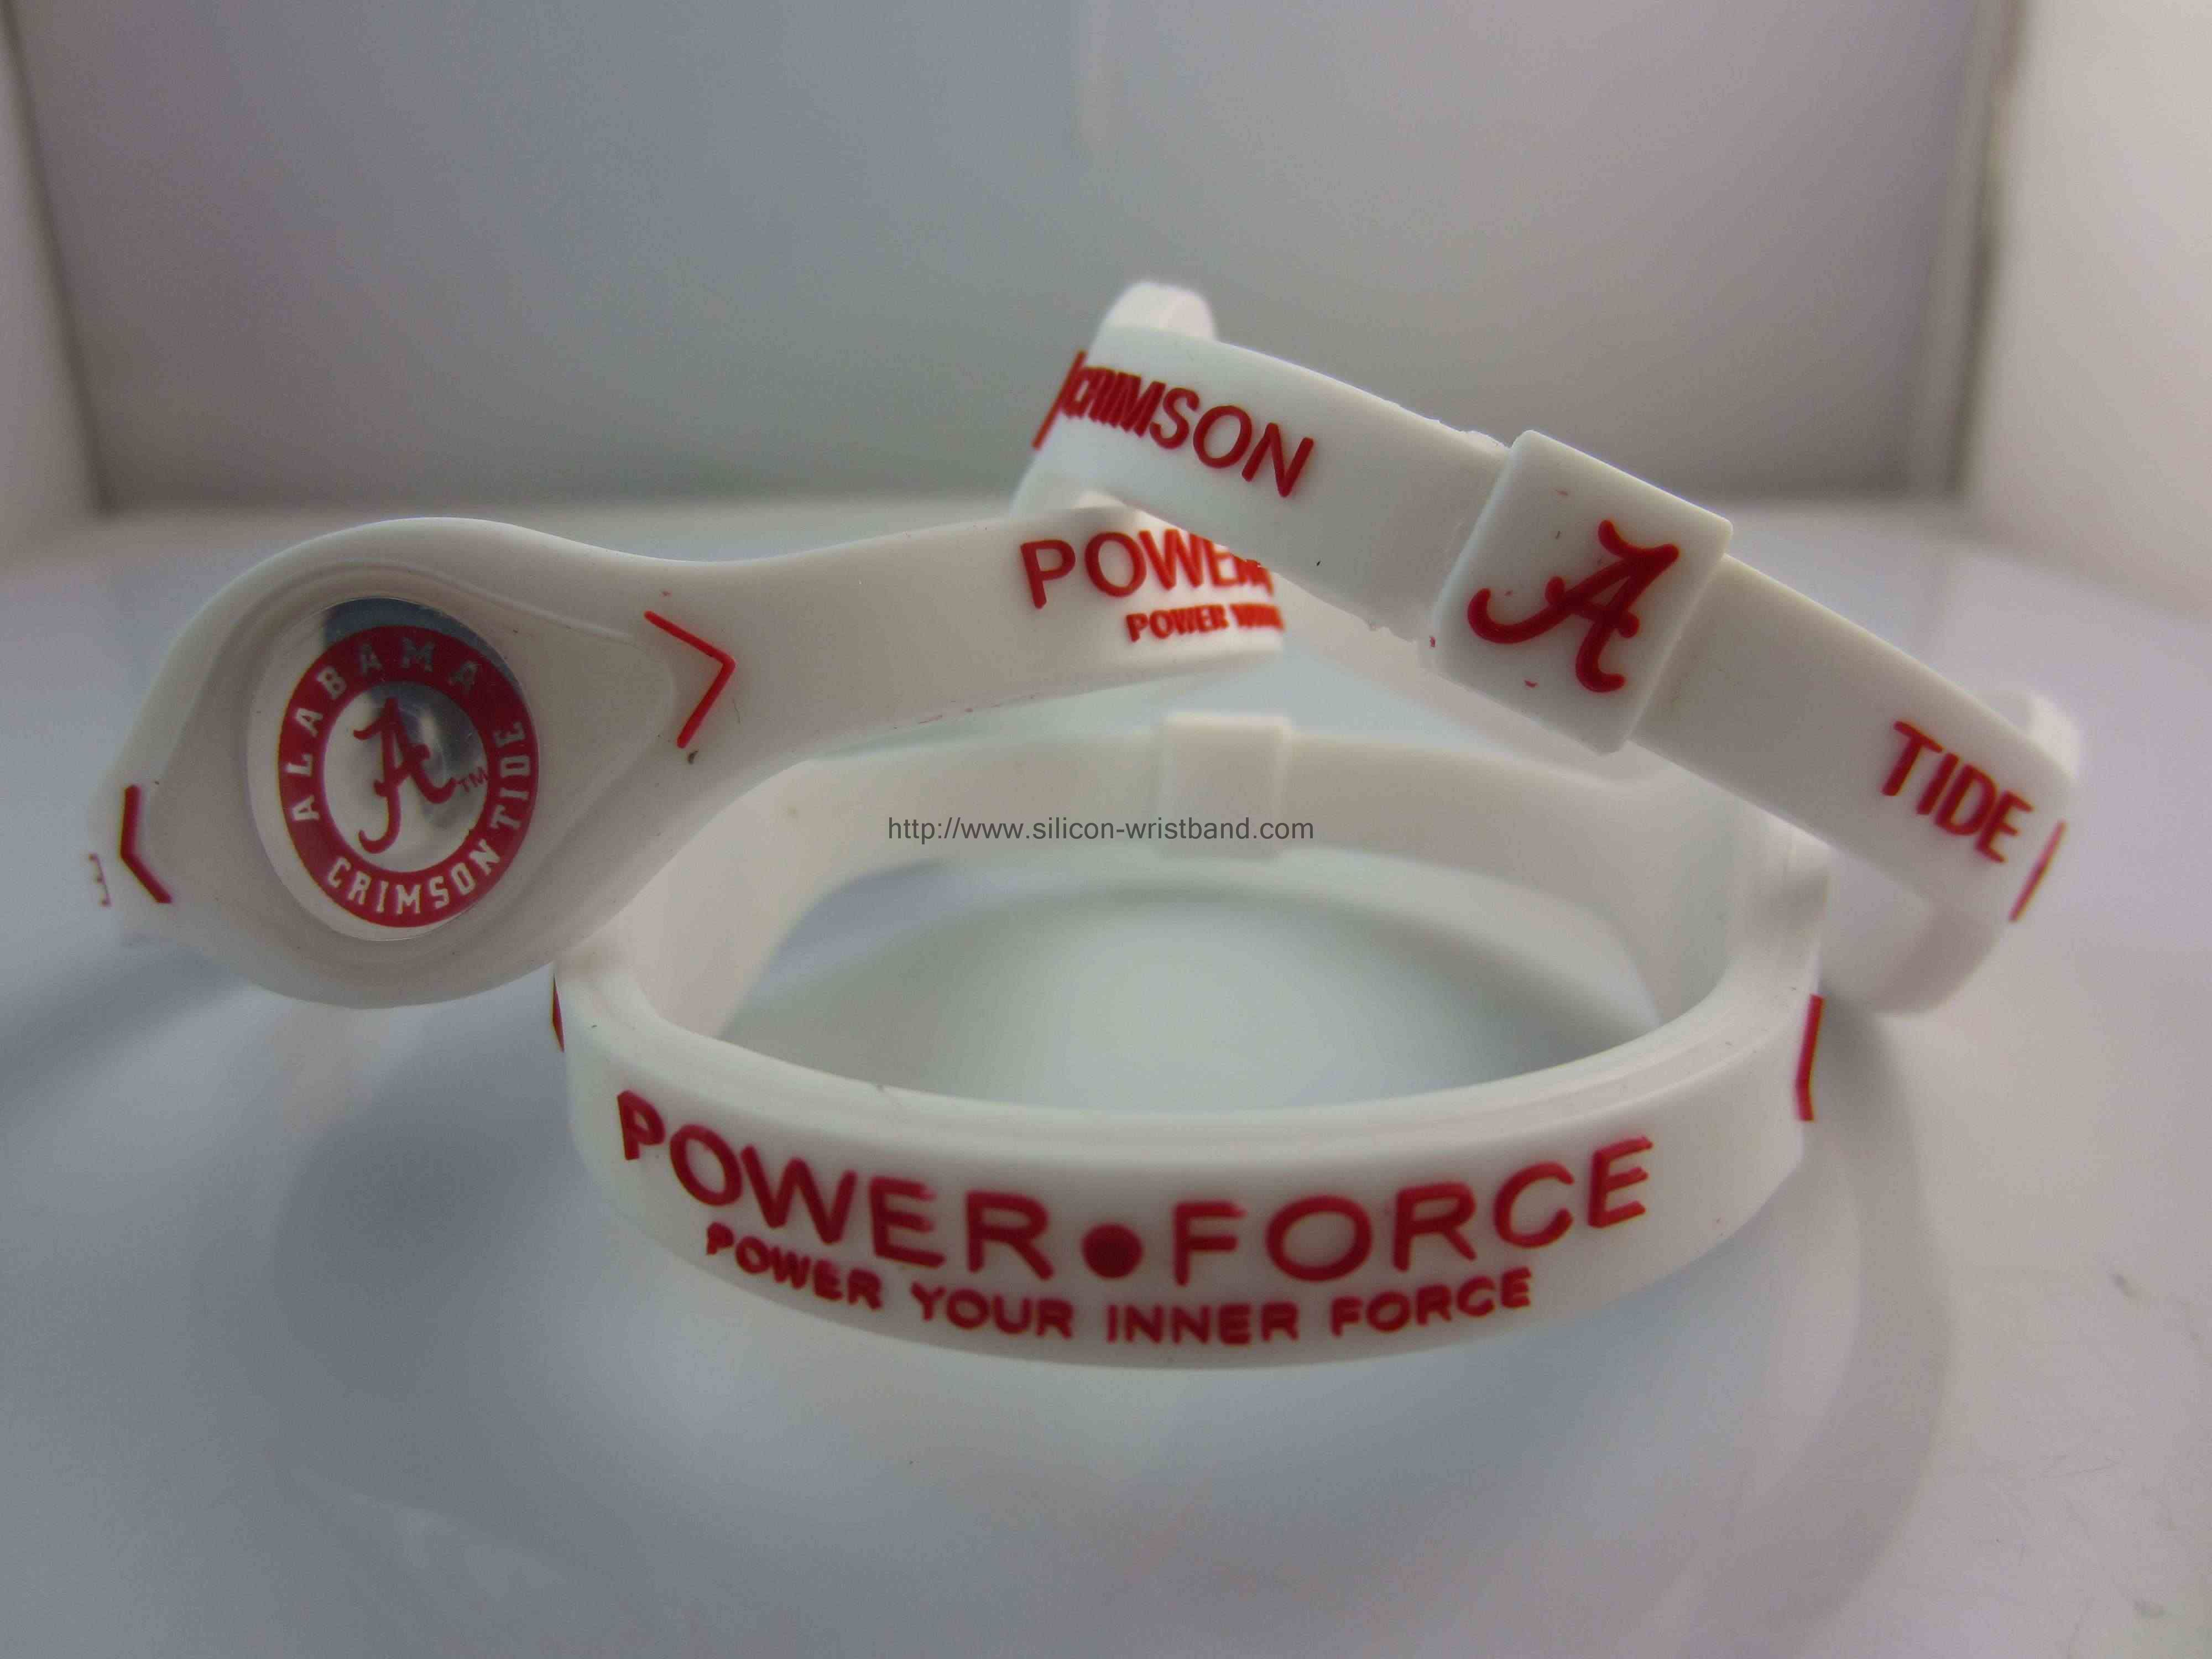 How to custom printed silicone wristbands?